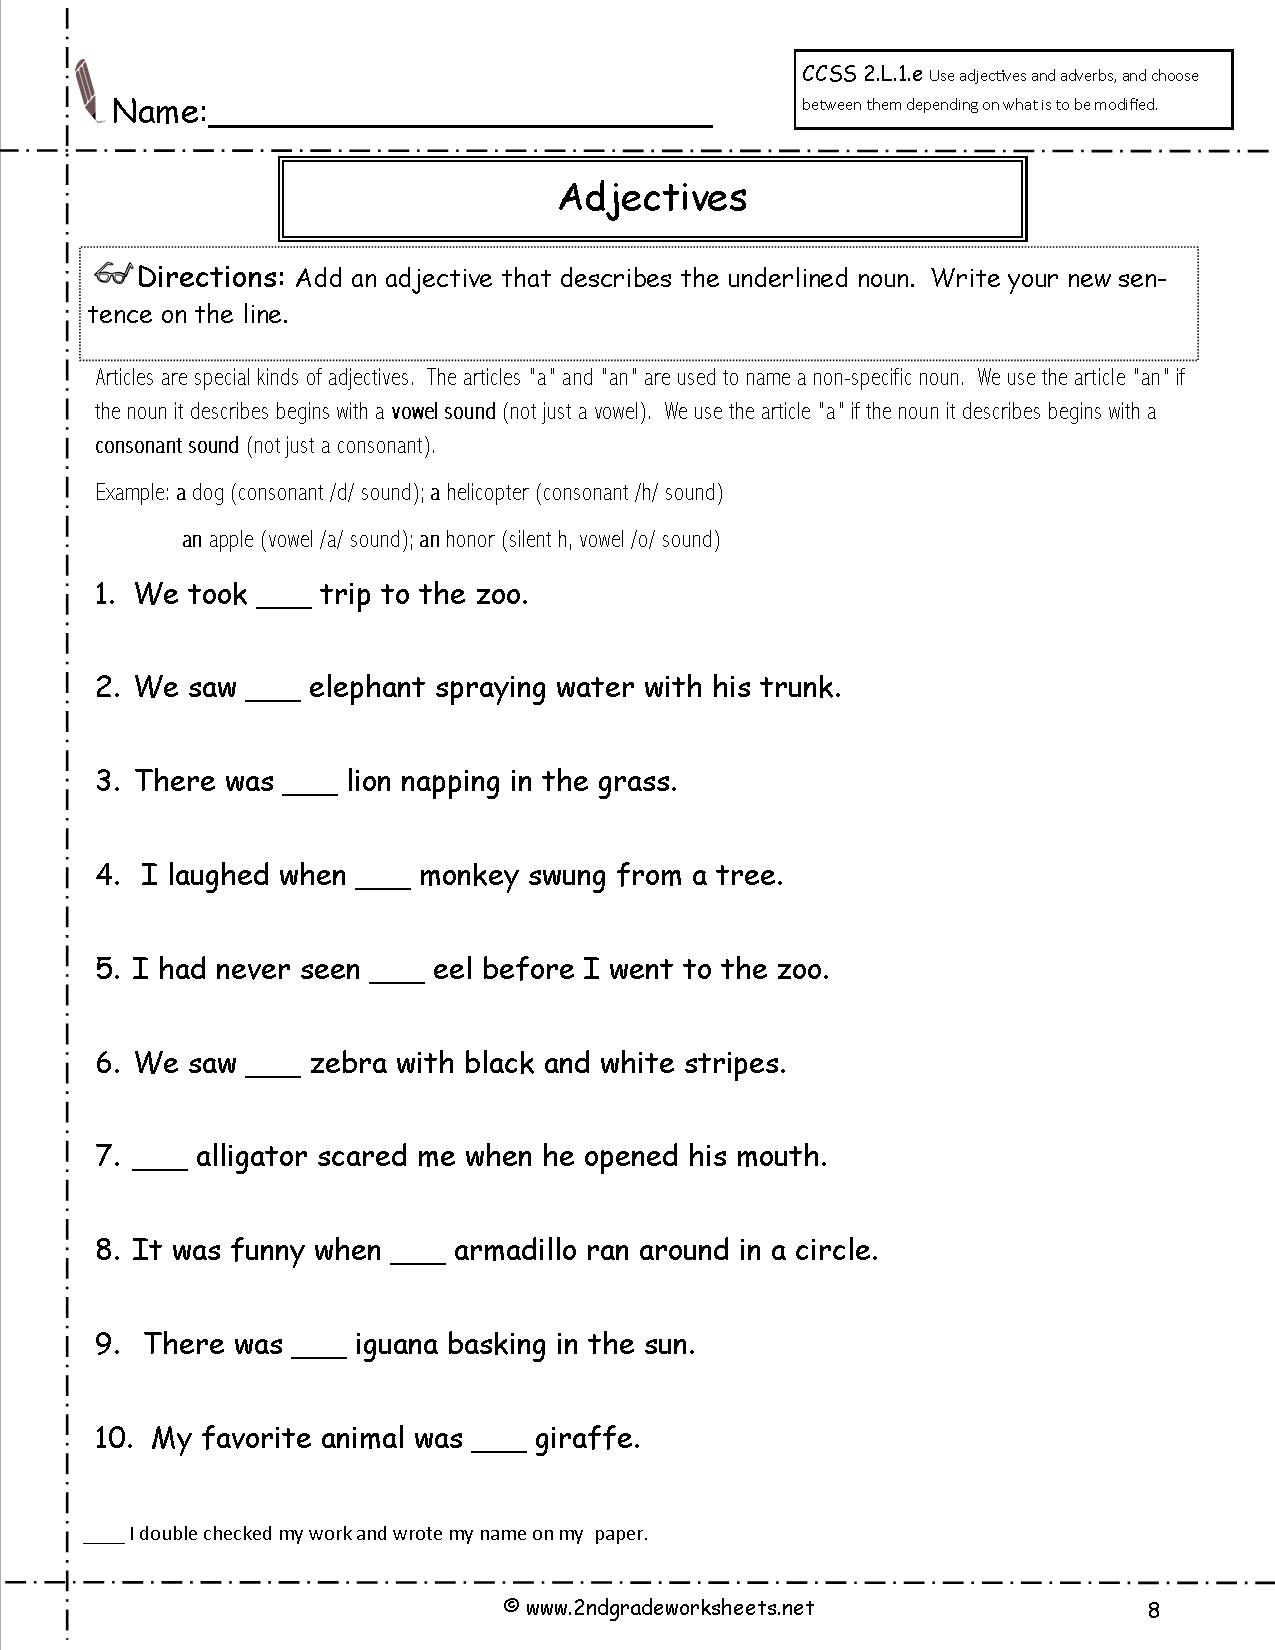 Free Printable Second Grade Worksheets » High School Worksheets | Free Printable Grammar Worksheets For Highschool Students